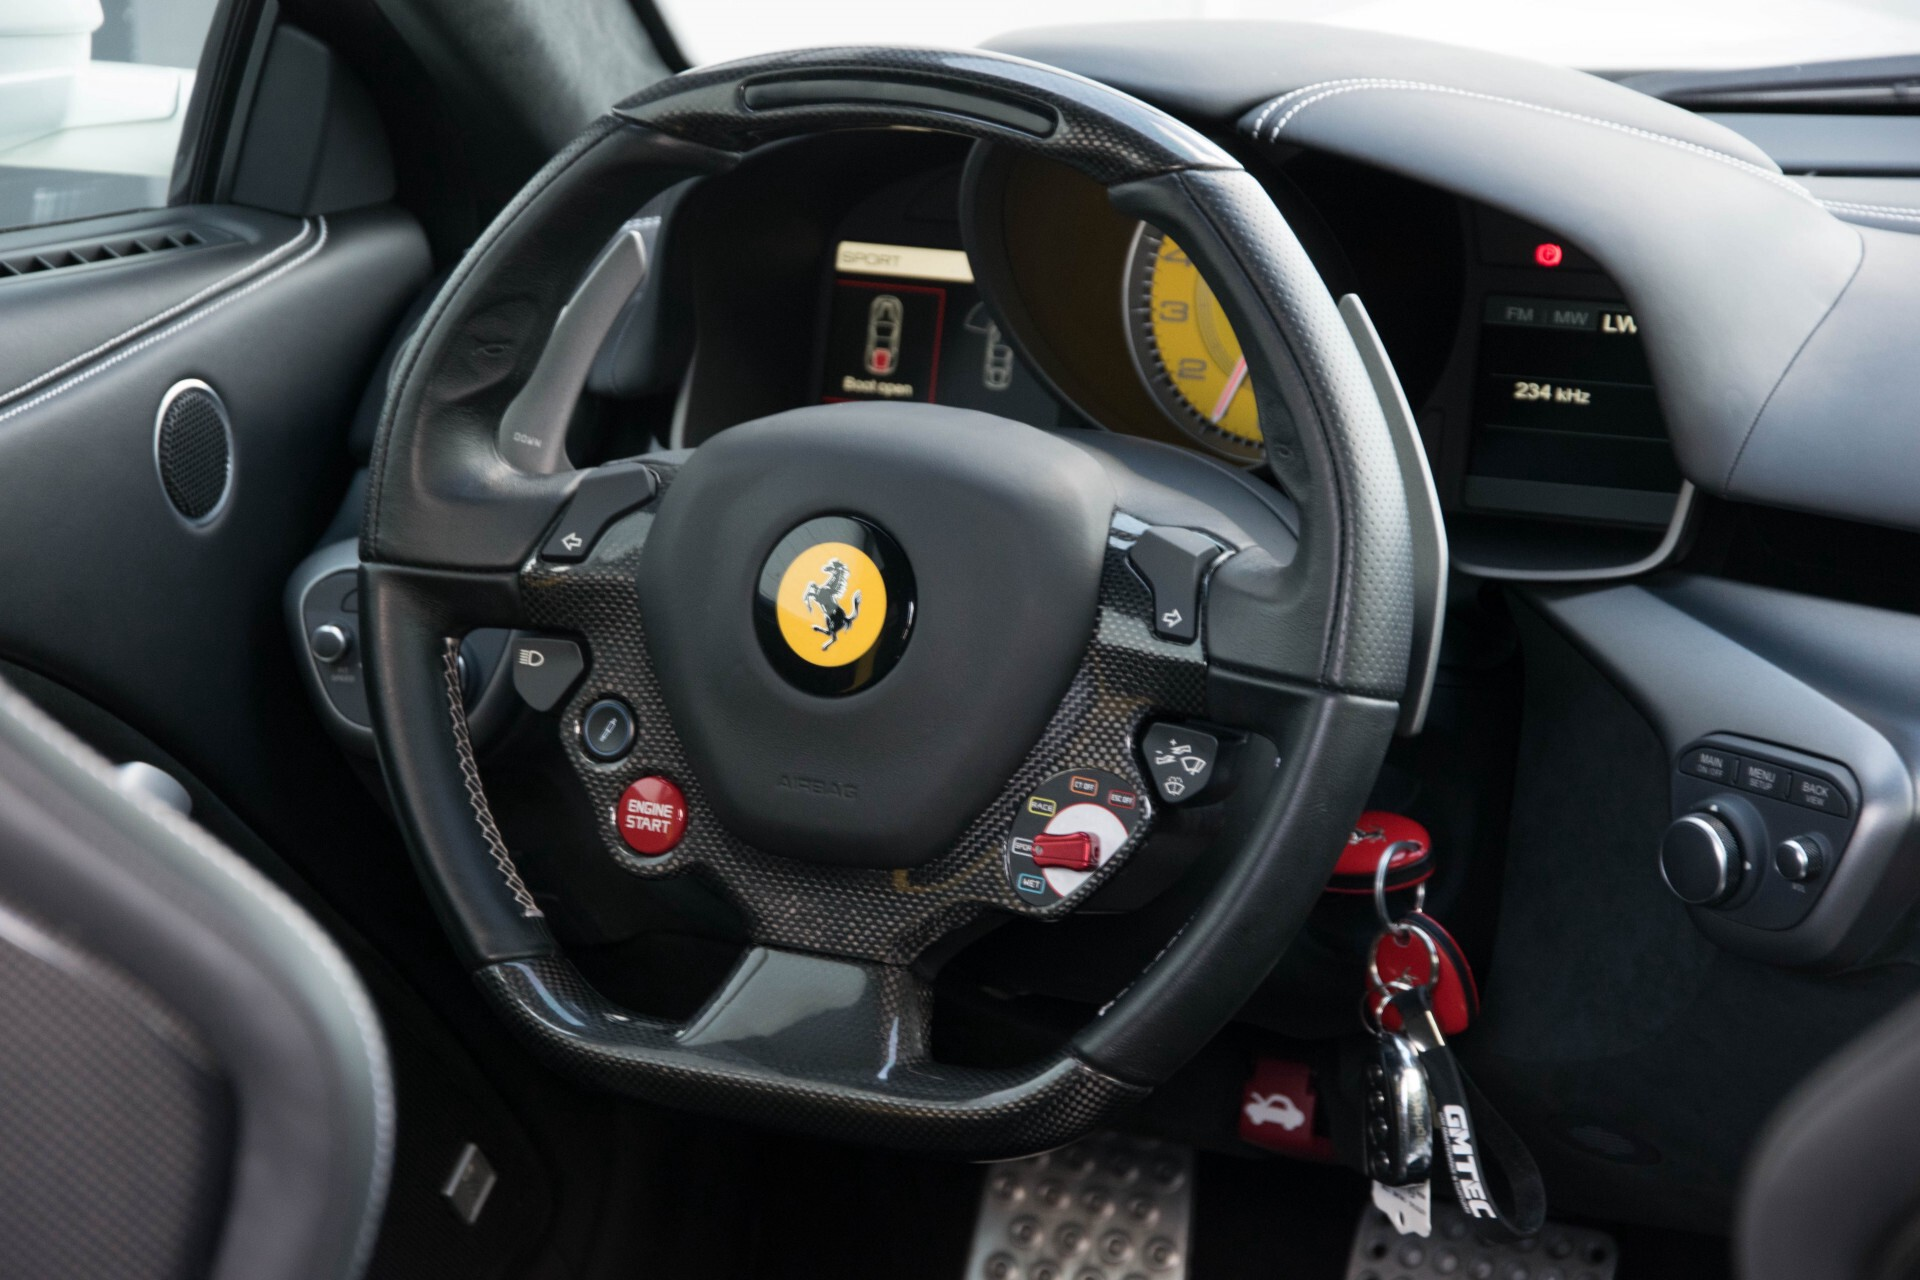 Ferrari F12 6.3 Berlinetta Capristo/Carbonseats/Led/Passenger Display Aut7 Foto 5